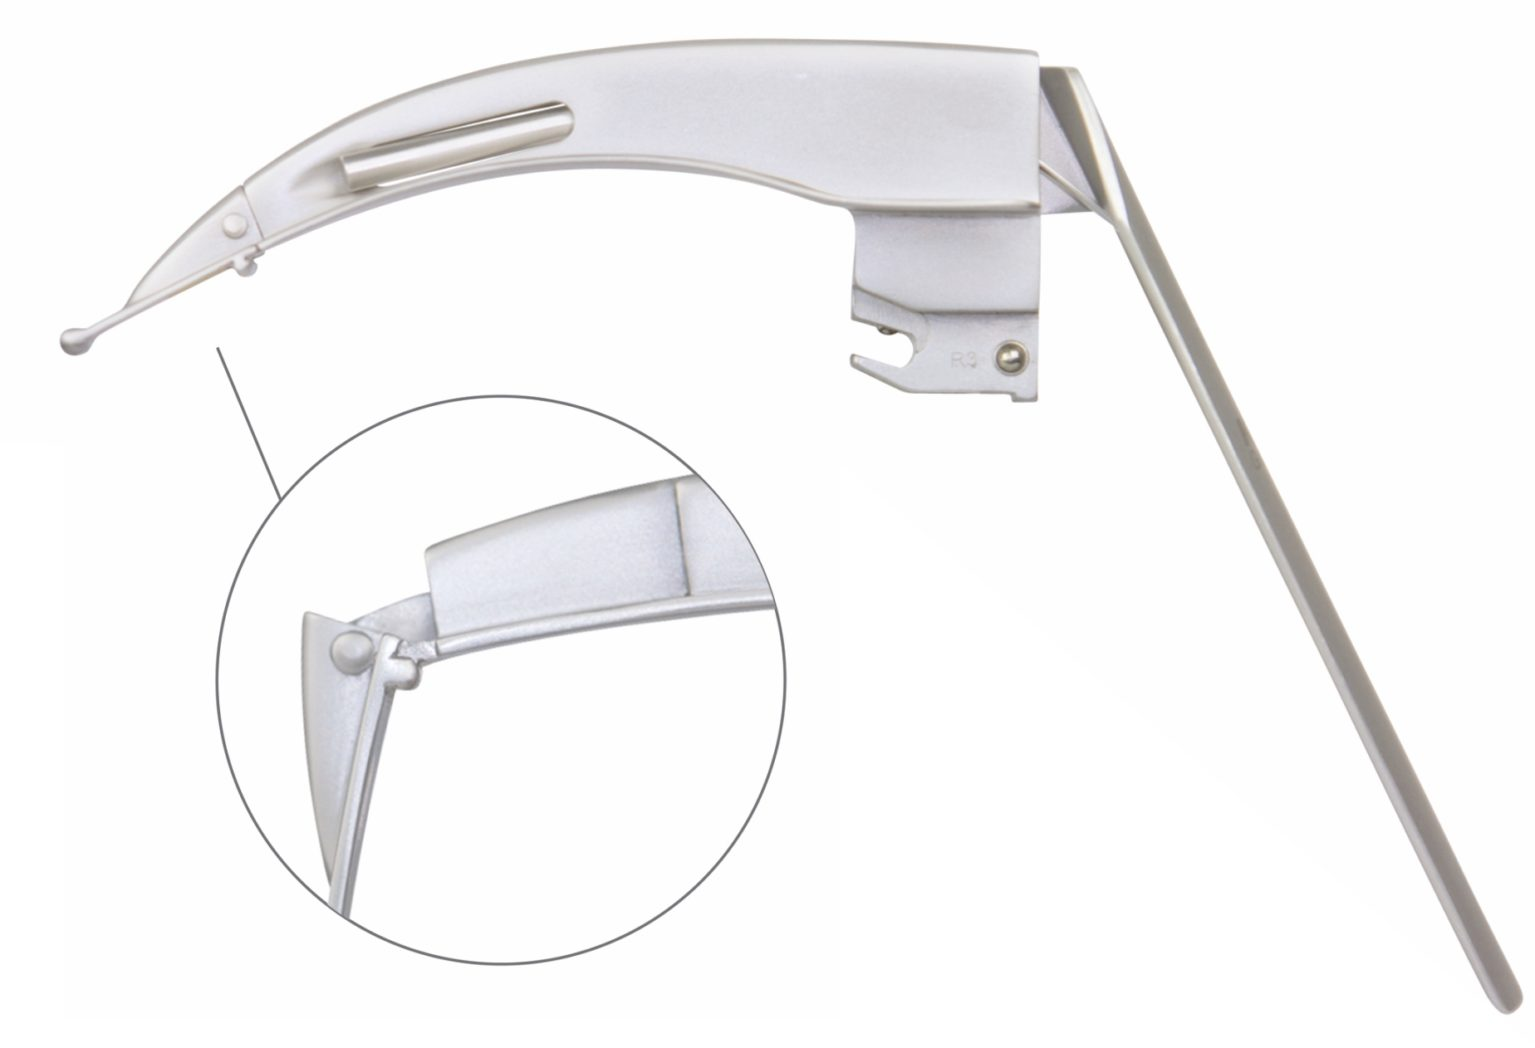 KaWe FLAPLIGHT F.O. Reusable Laryngoscope Blade